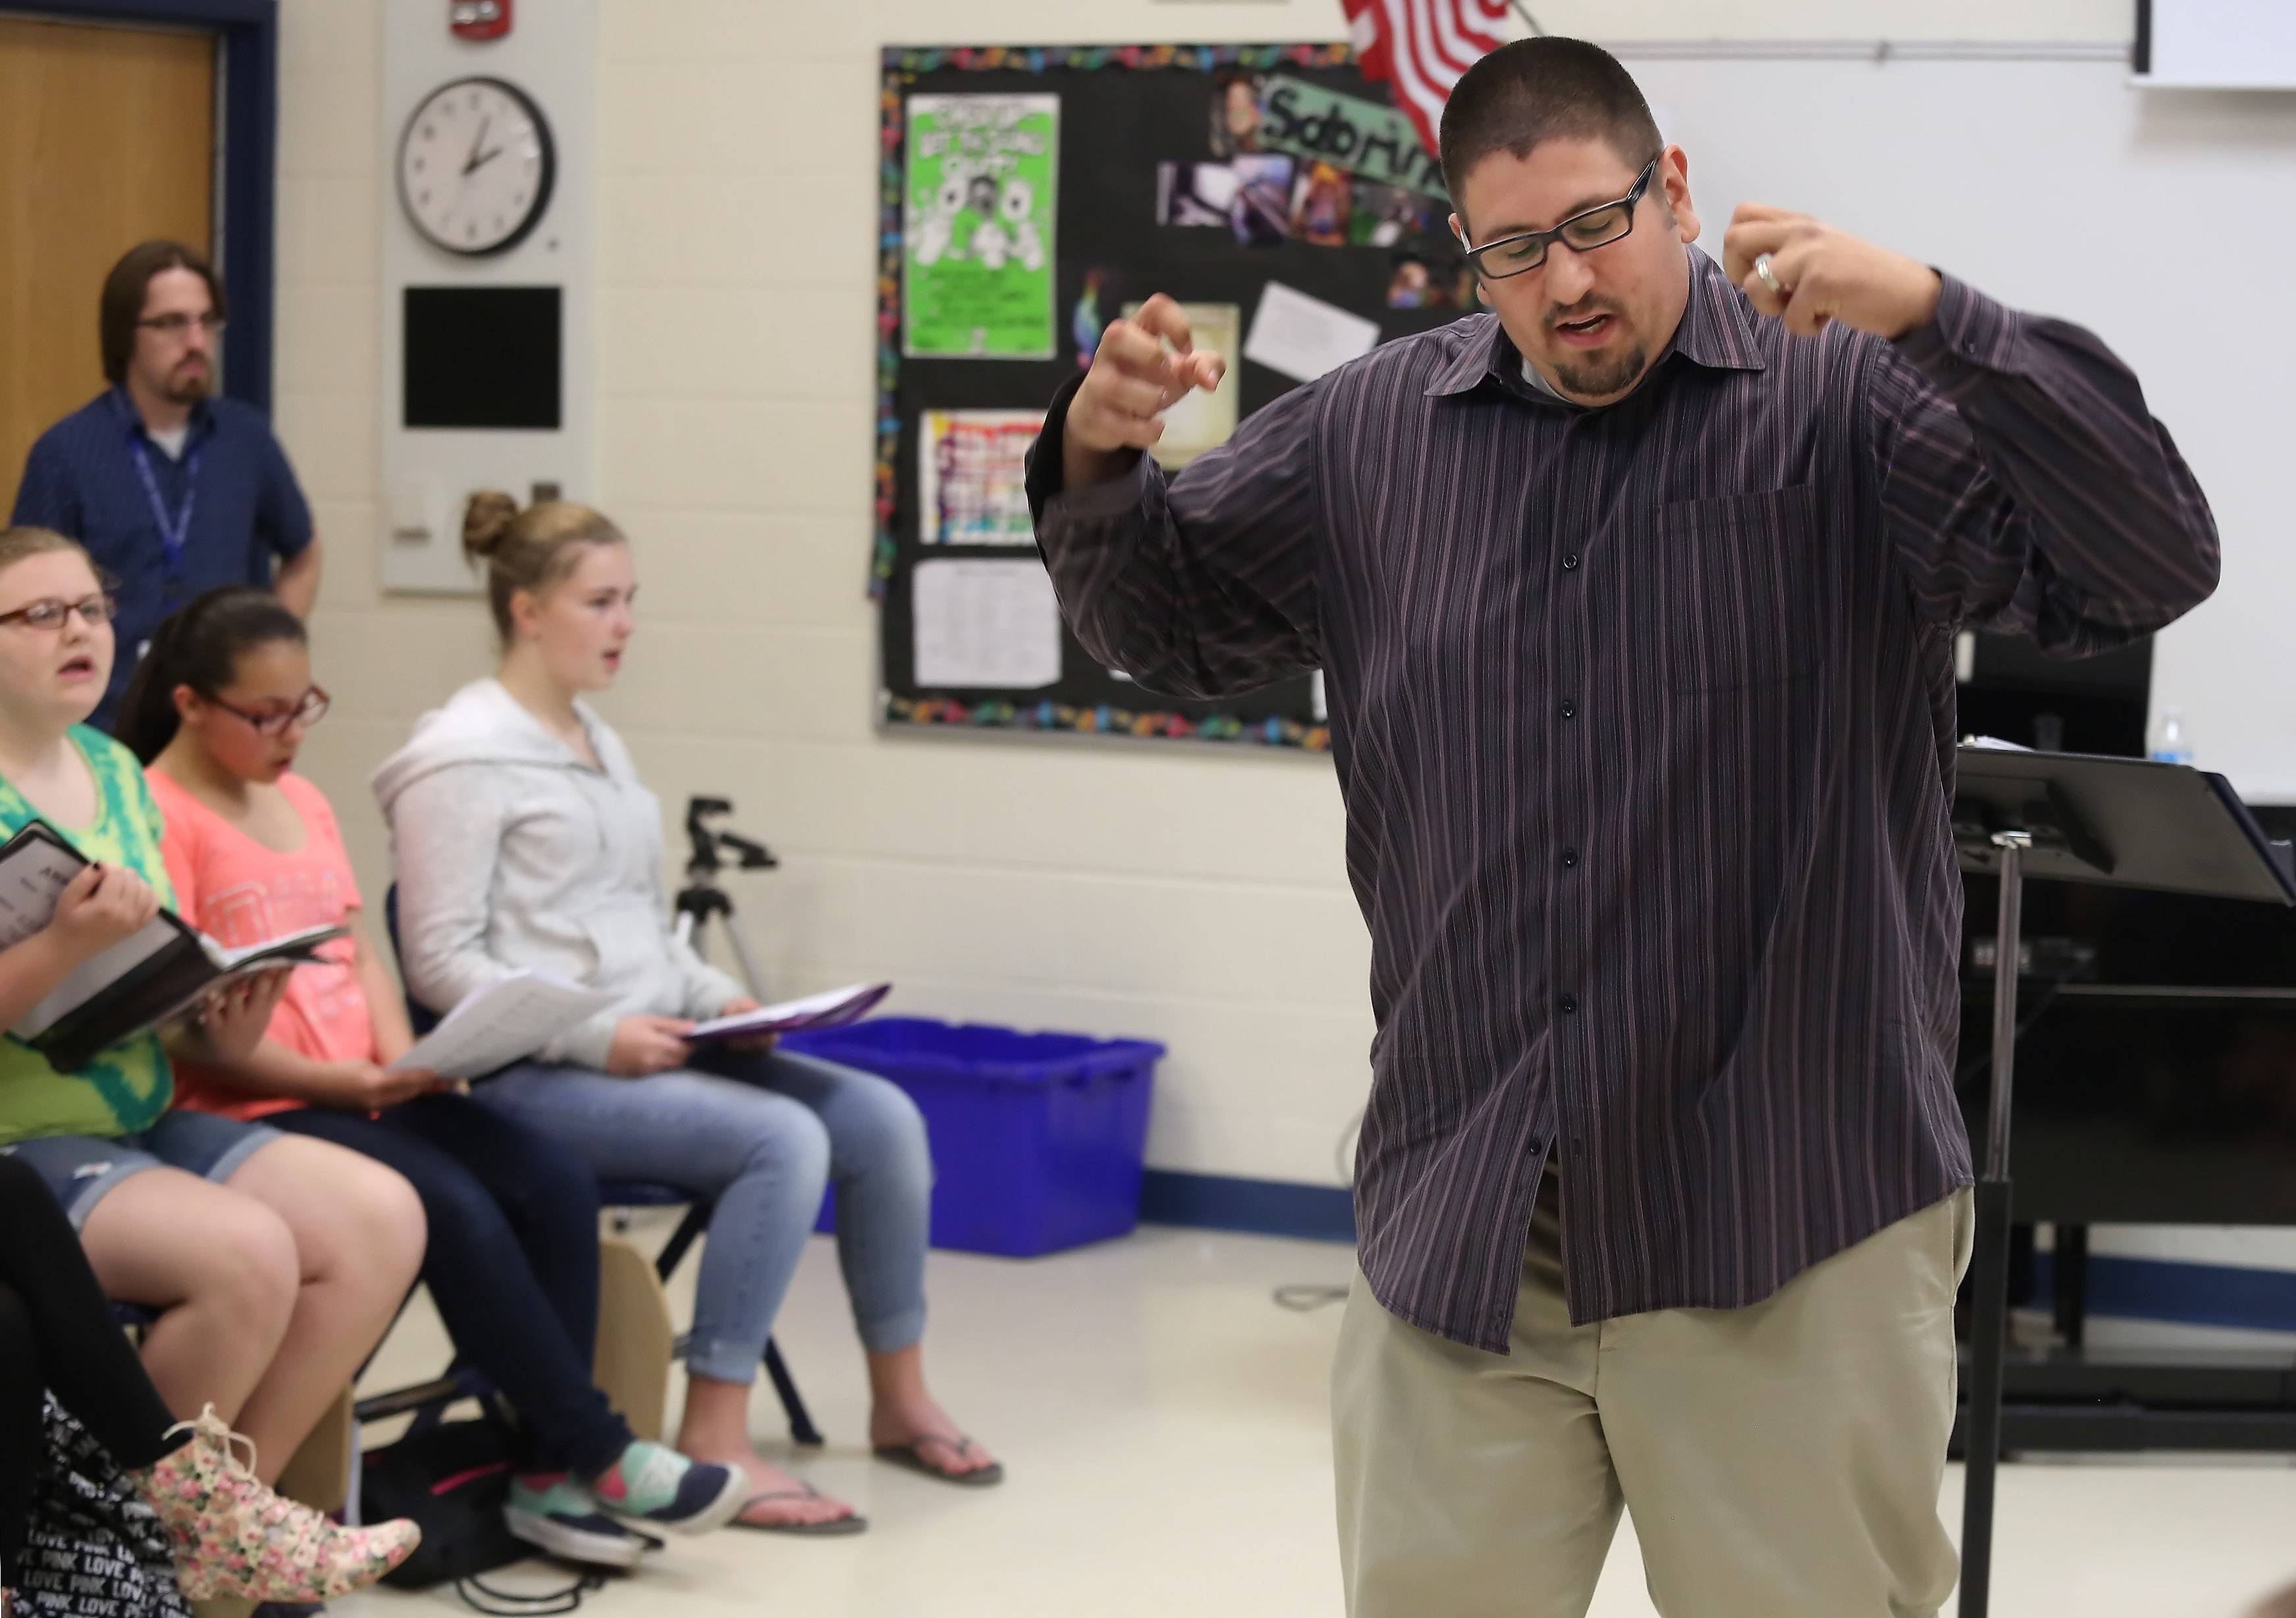 Round Lake Middle School music teacher Javier Diaz is known for his enthusiasm when he conducts the choir program.